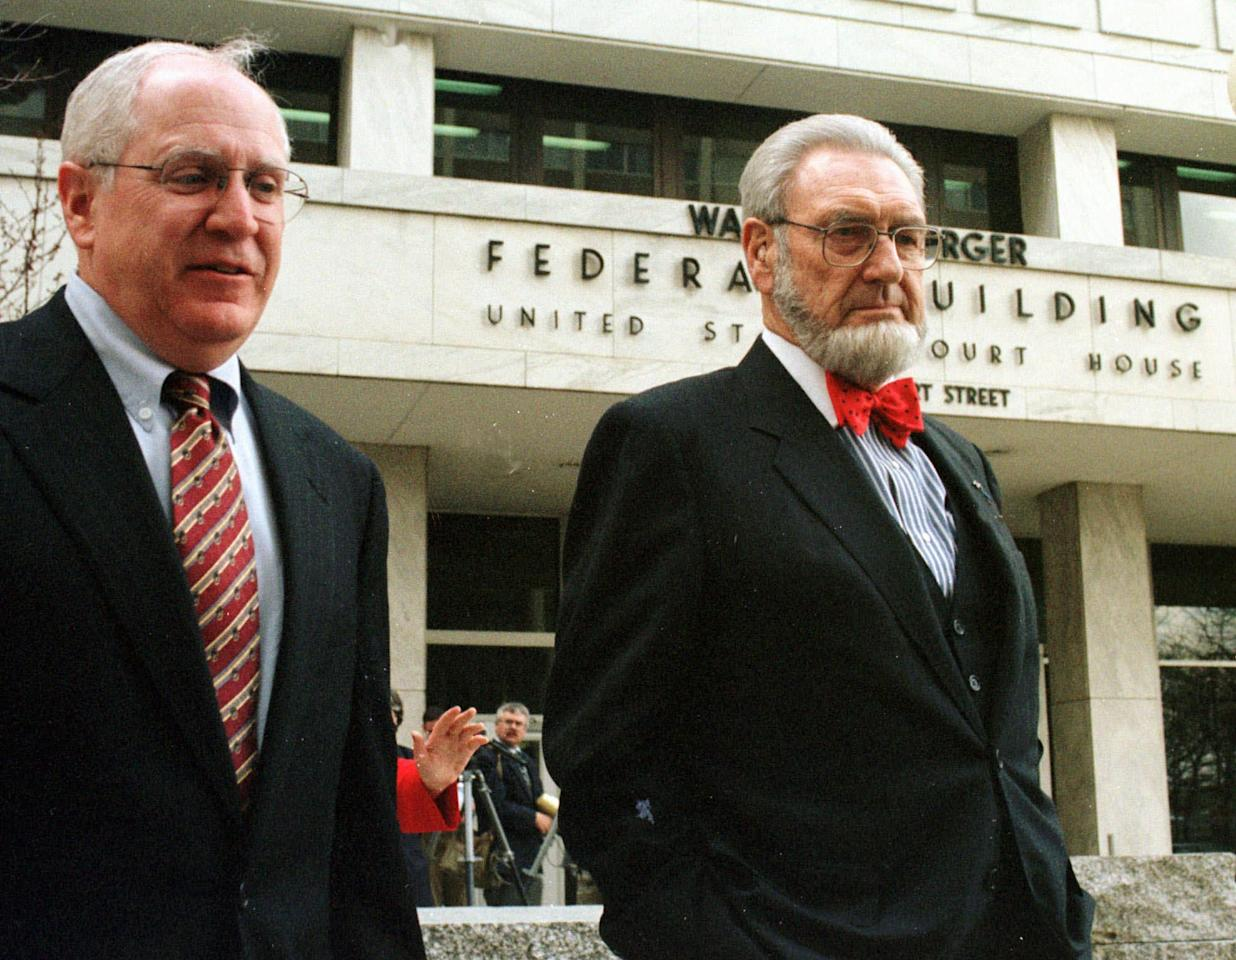 Minnesota Attorney General Hubert H. Humphrey III, left, accompanies former U.S. Surgeon General C. Everett Koop to a  car after Koop sat as a spectator in the courtroom during the state's tobacco trial in St. Paul, Minn., Friday, April 17, 1998. Koop issued a report in 1988 declaring that nicotine in cigarettes is as addictive as cocaine or heroin. (AP Photo/Jim Mone)